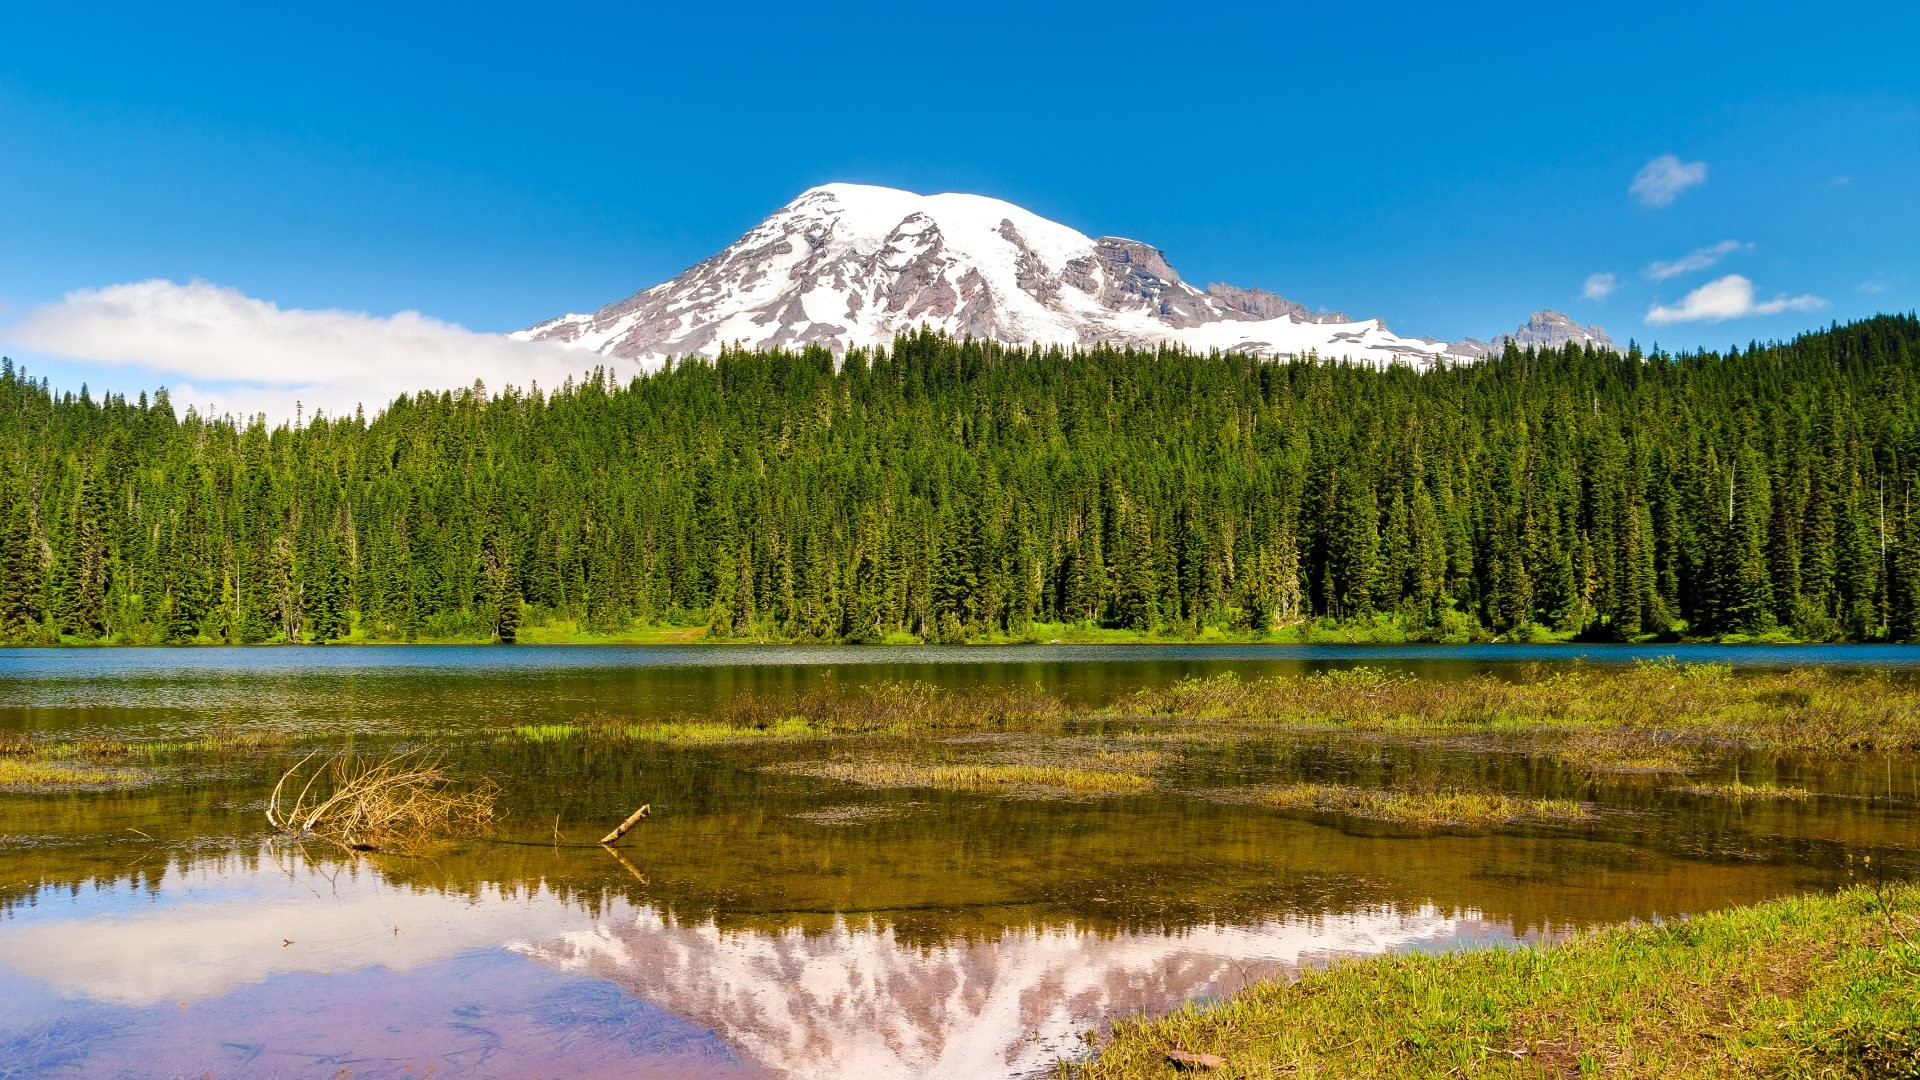 1920x1080 4K HD Wallpaper: Mount Rainier at southeast of Seattle